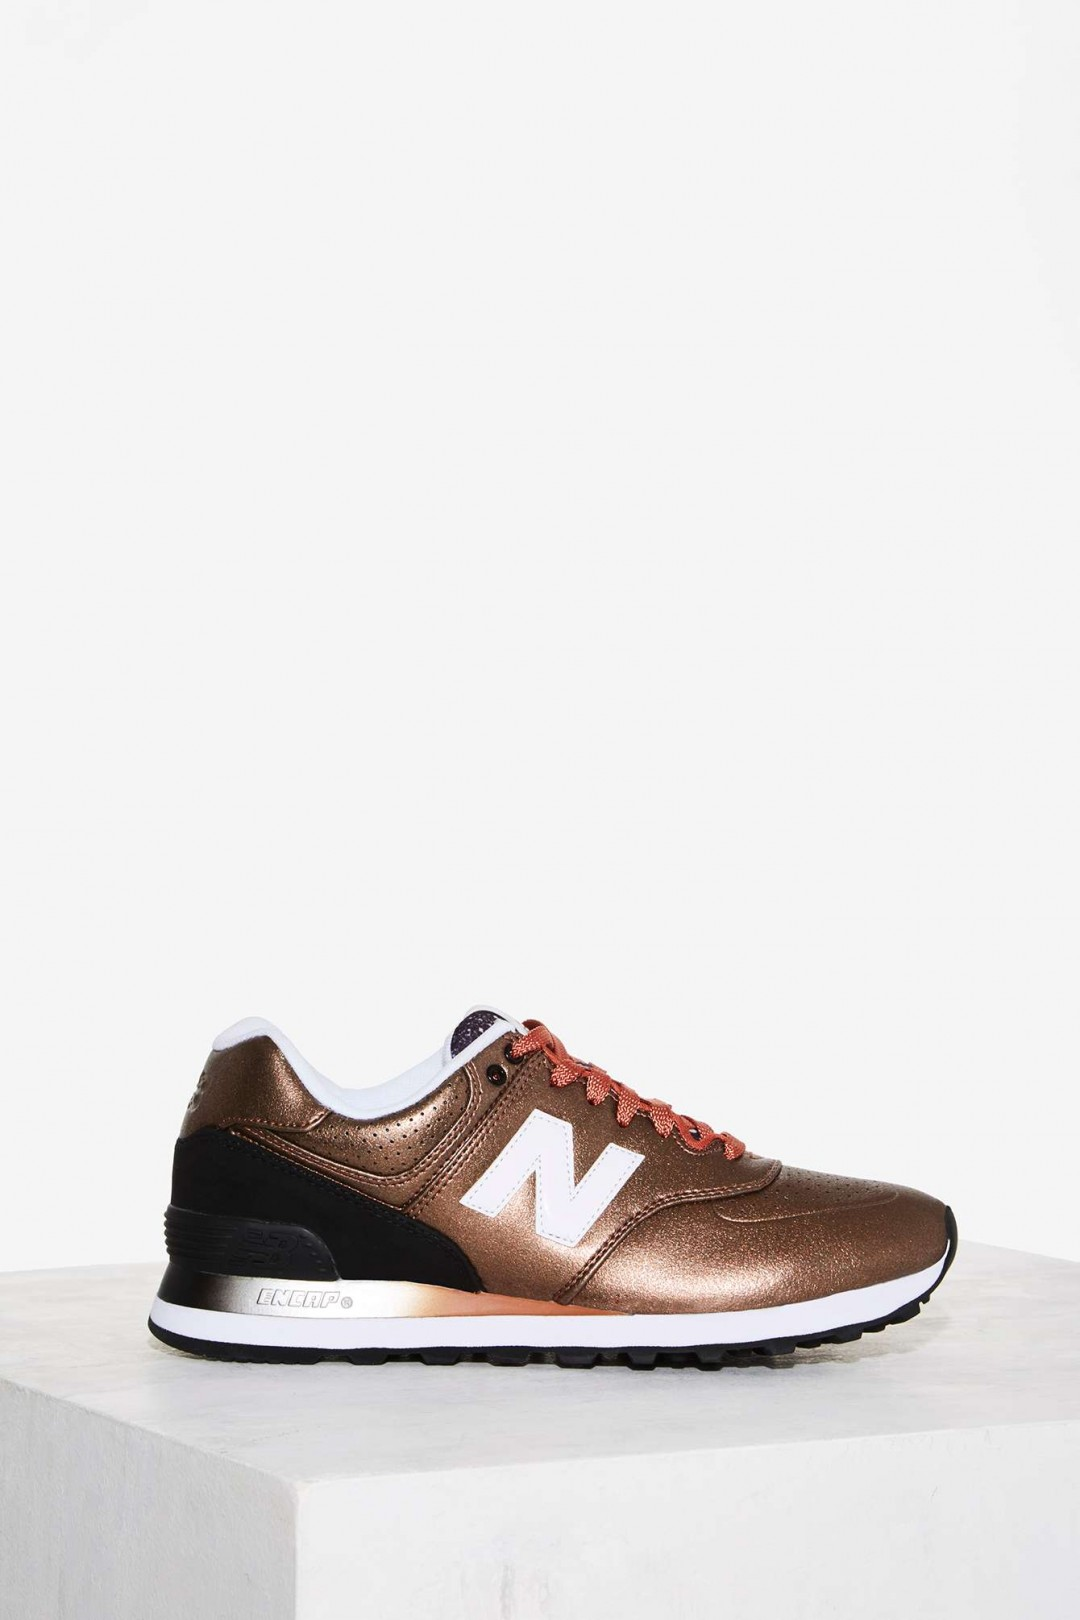 New Balance 574 Gradient Metallic Sneaker